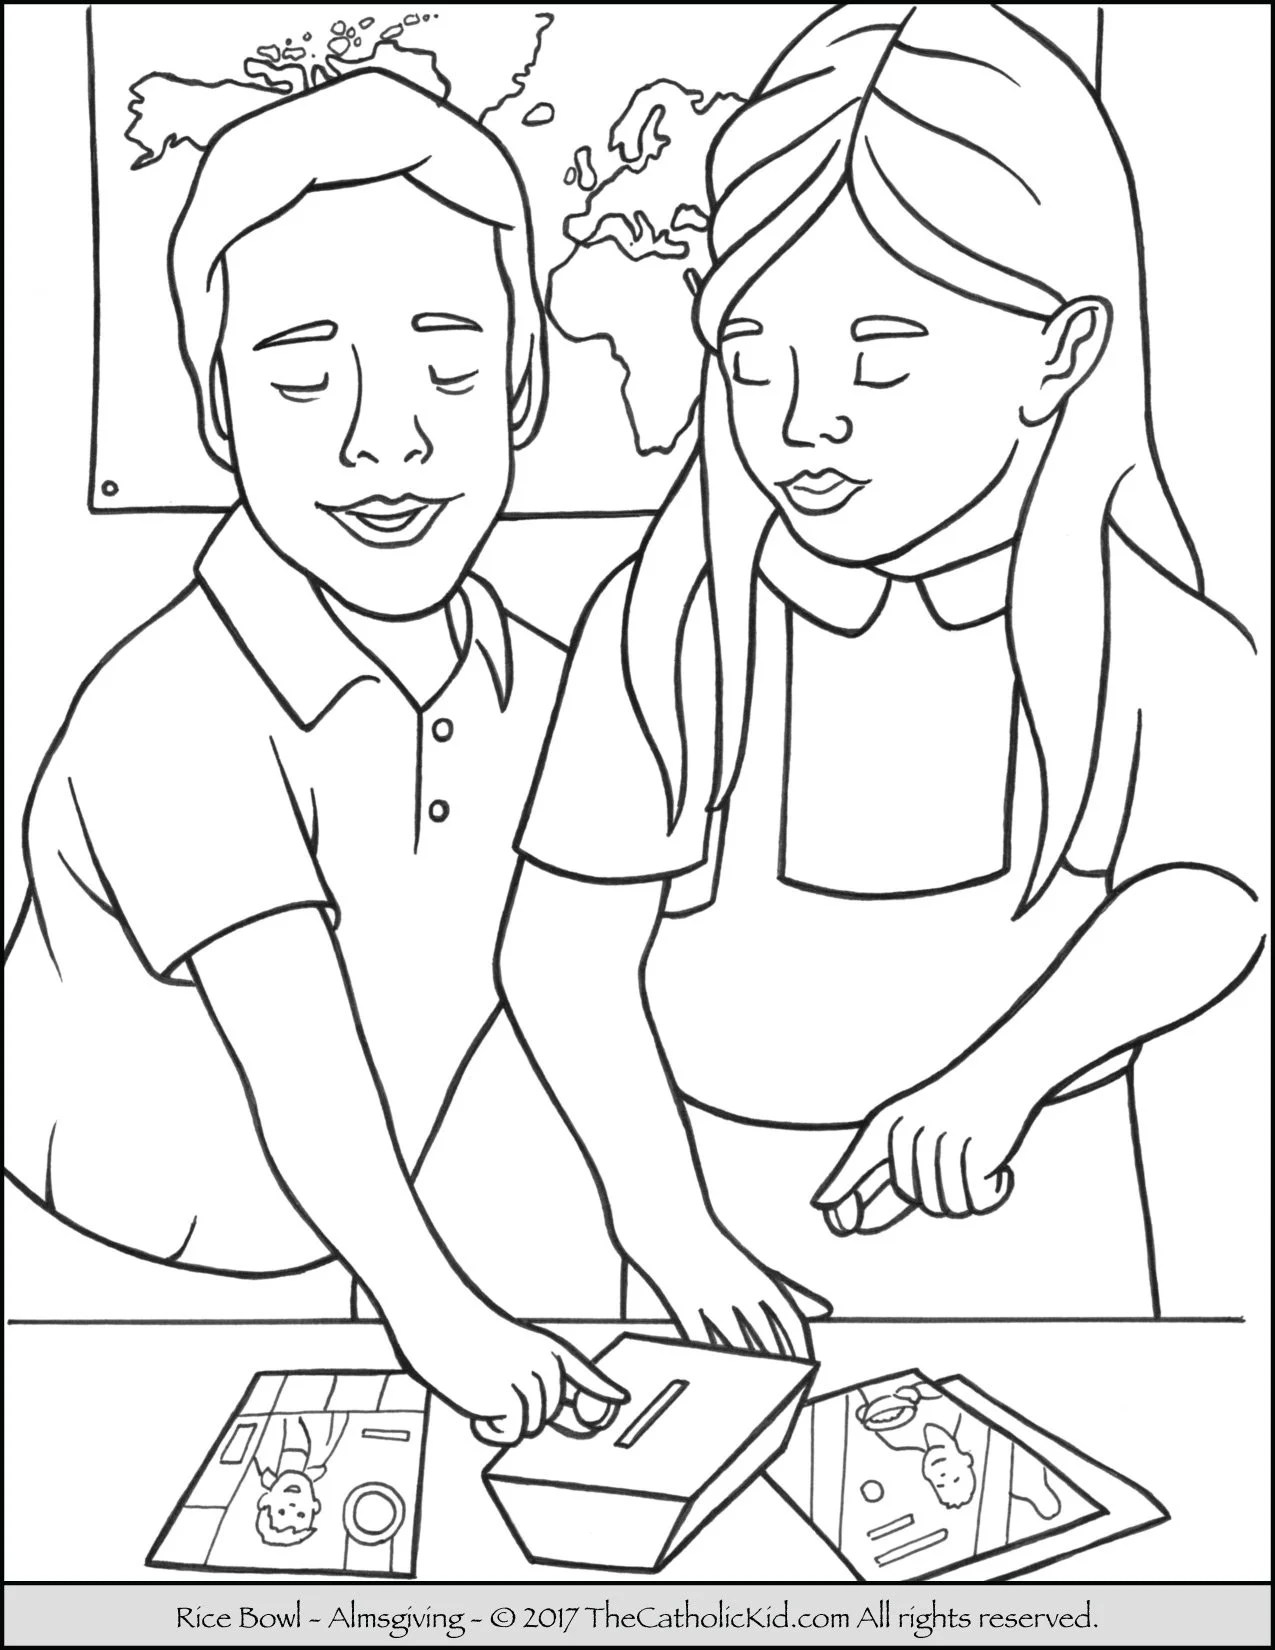 Rice Bowl Coloring Page